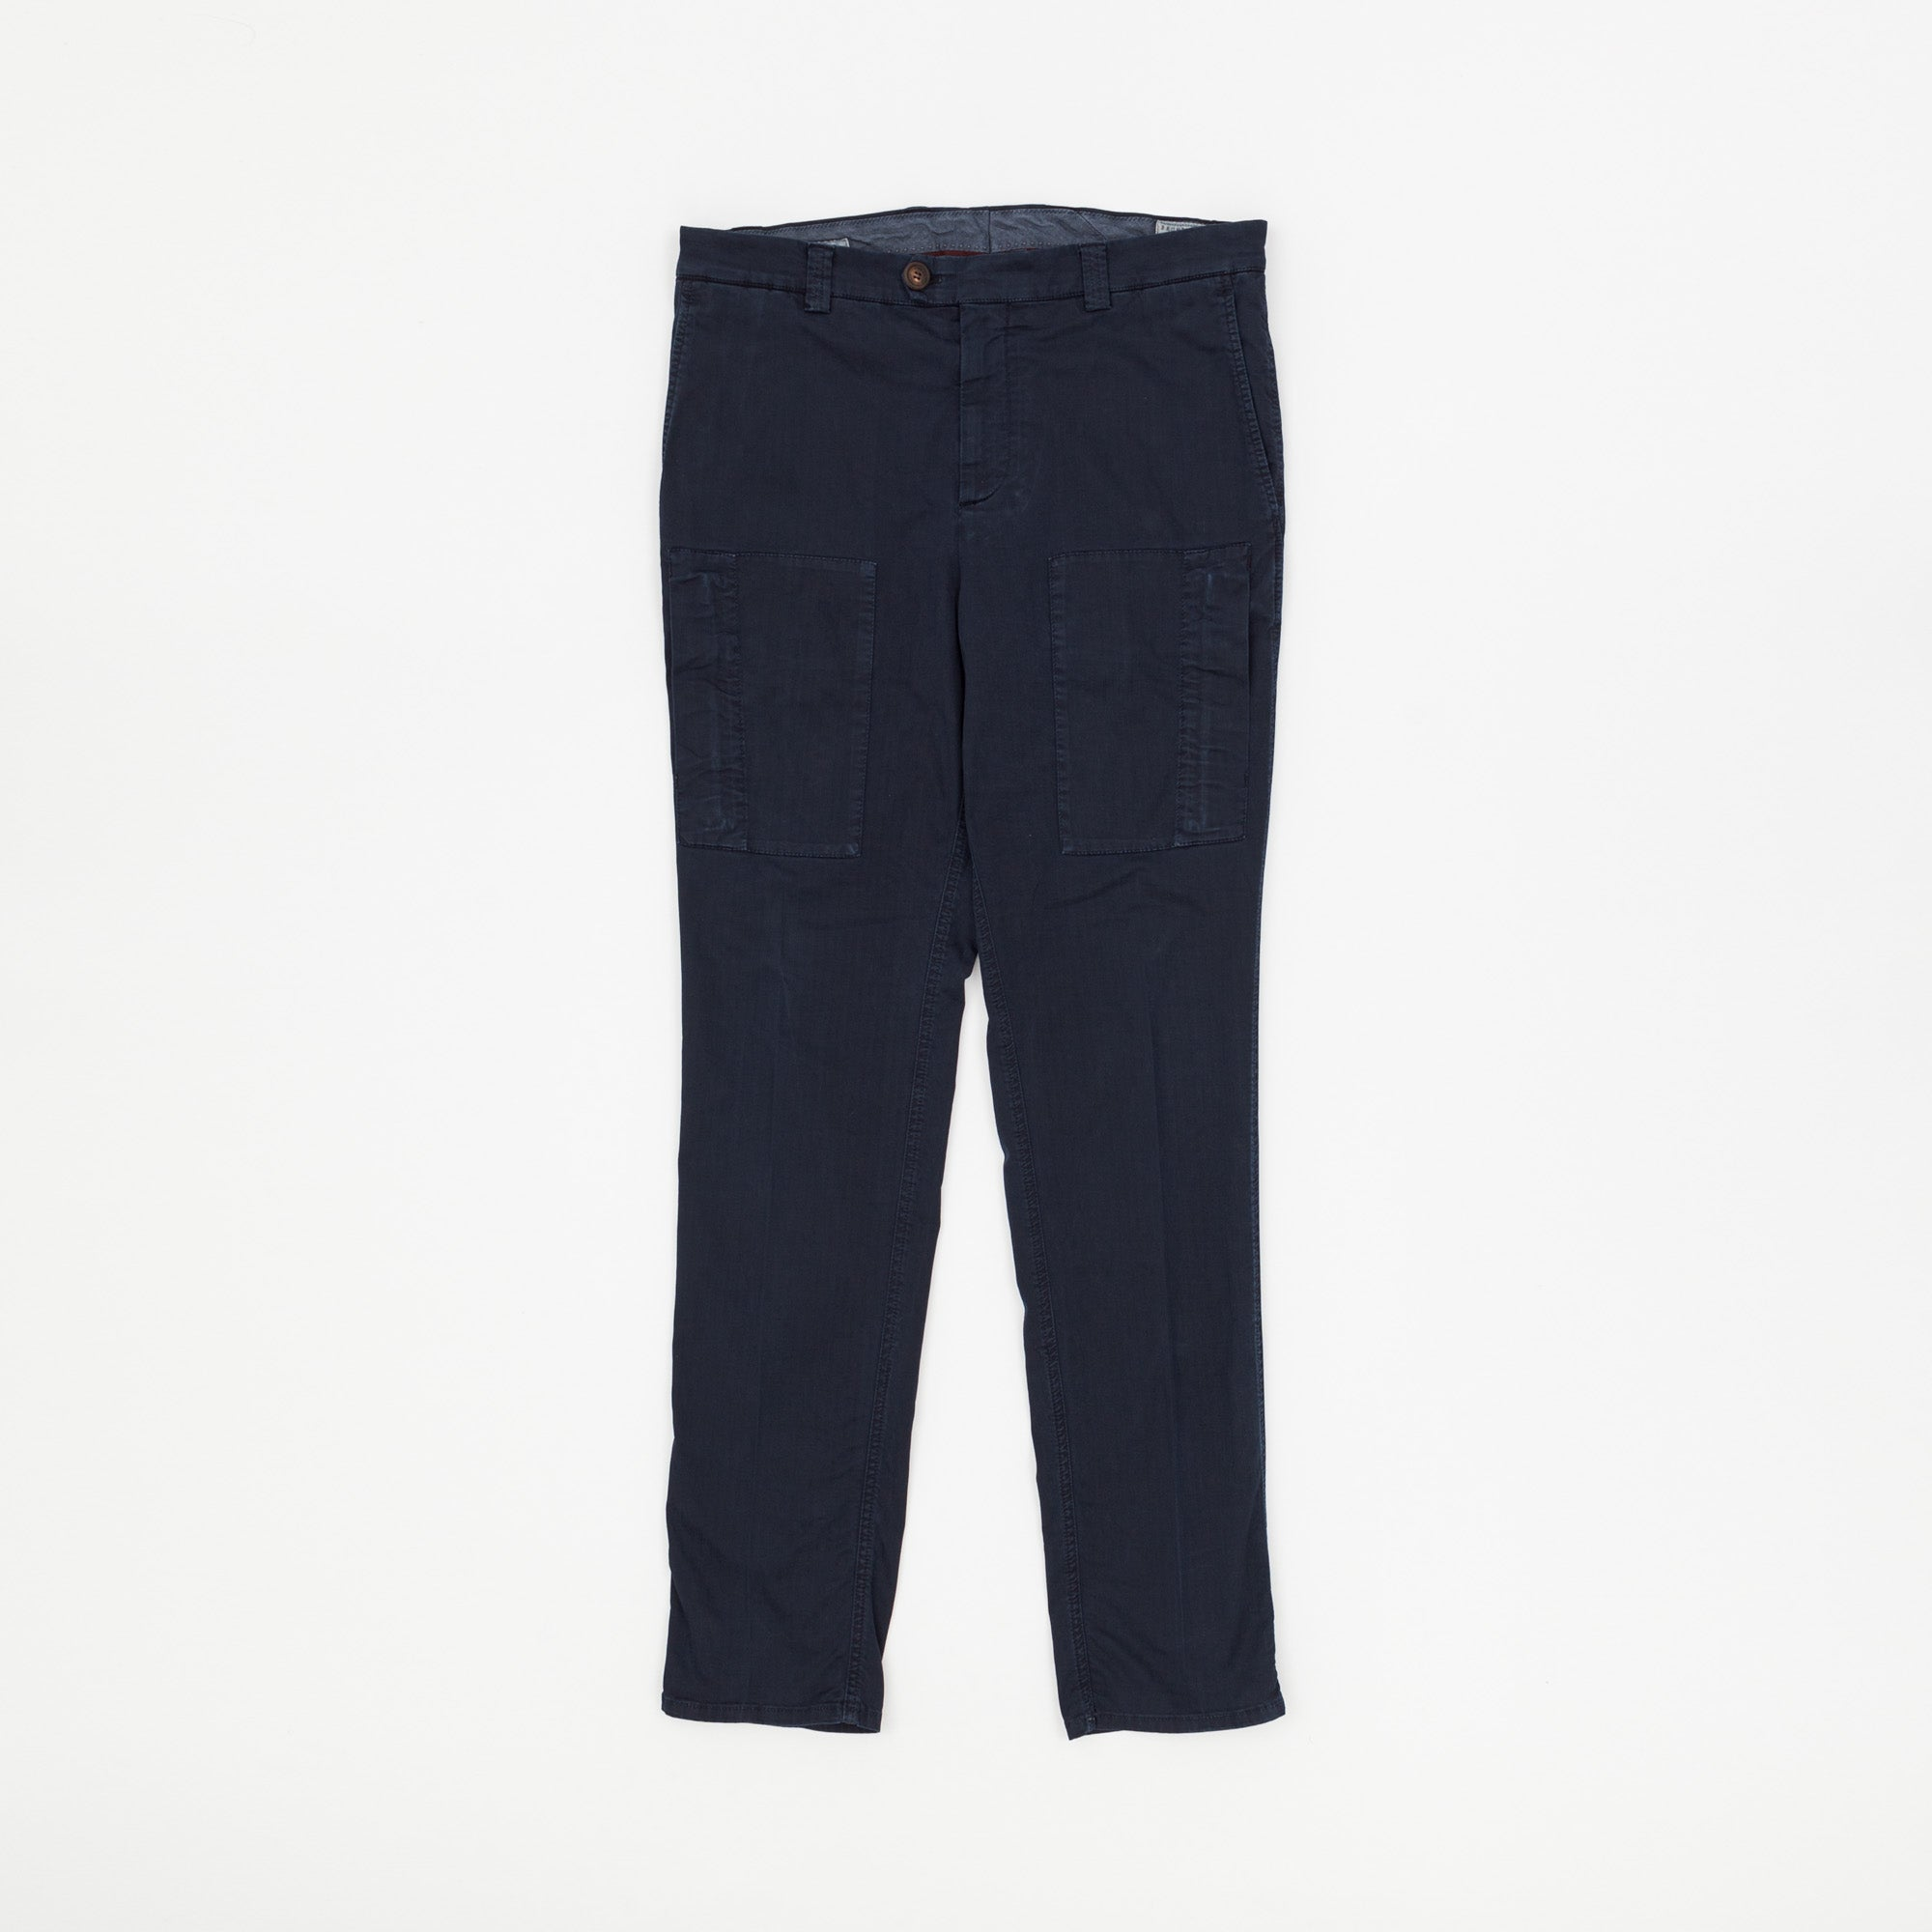 Brunello Cucinelli Leisure Fit Naval Trousers